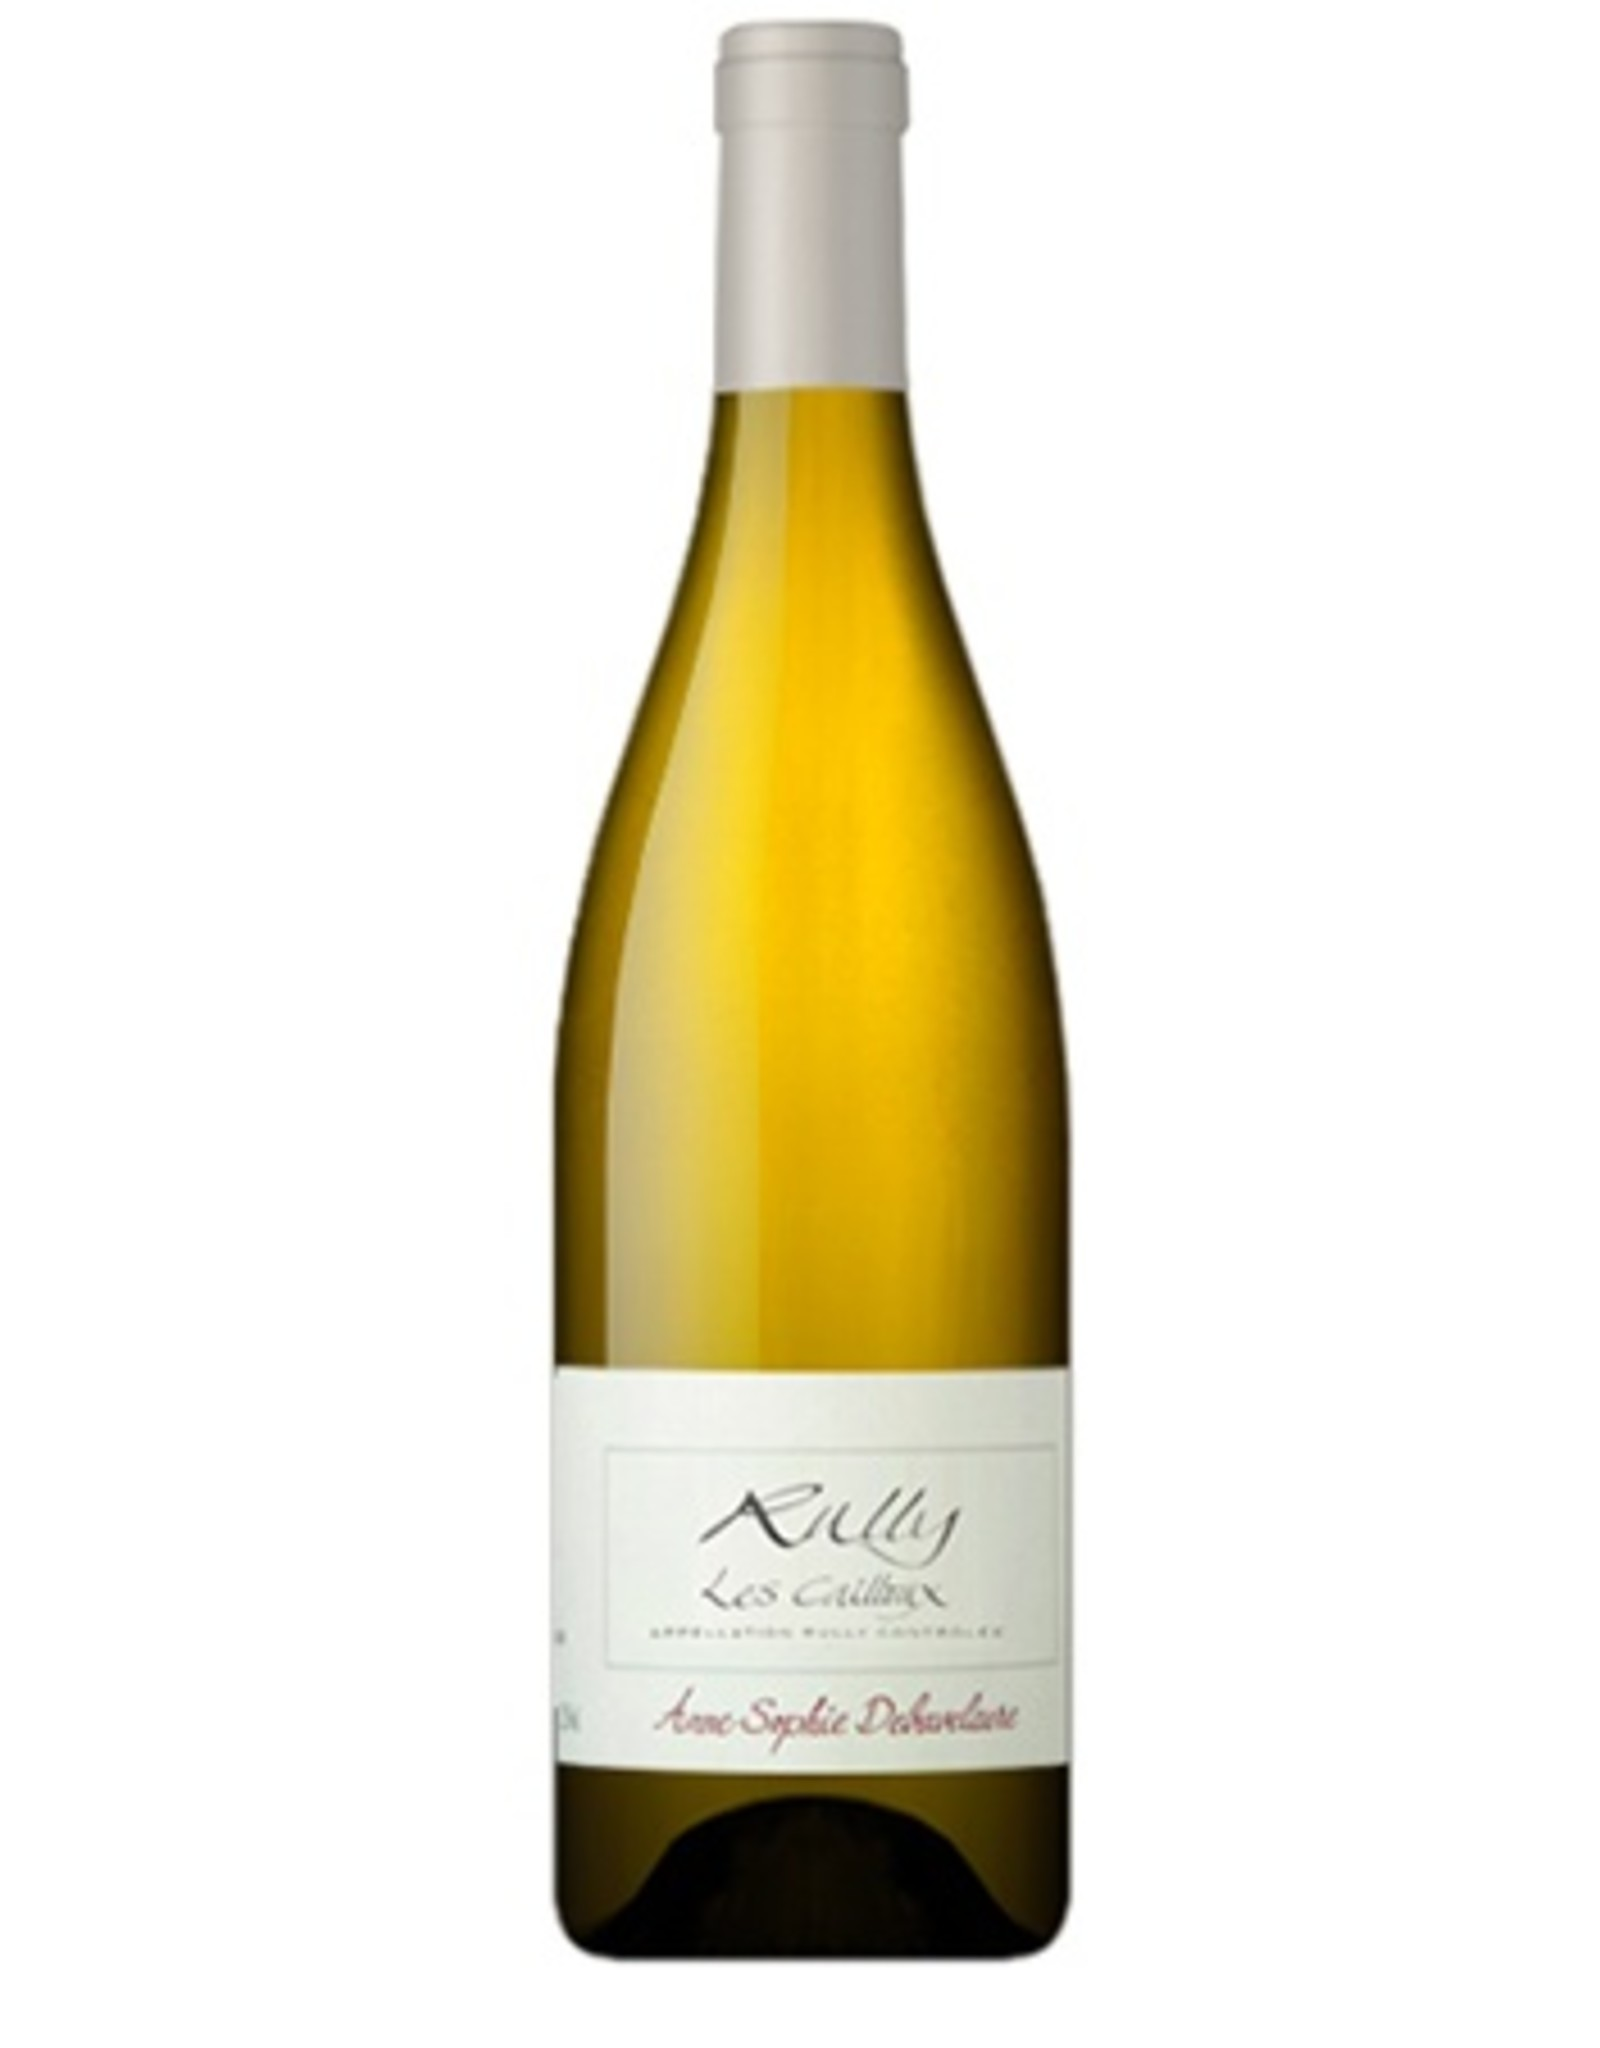 Domaine Rois Mages Rully Les Cailloux Blanc 2017